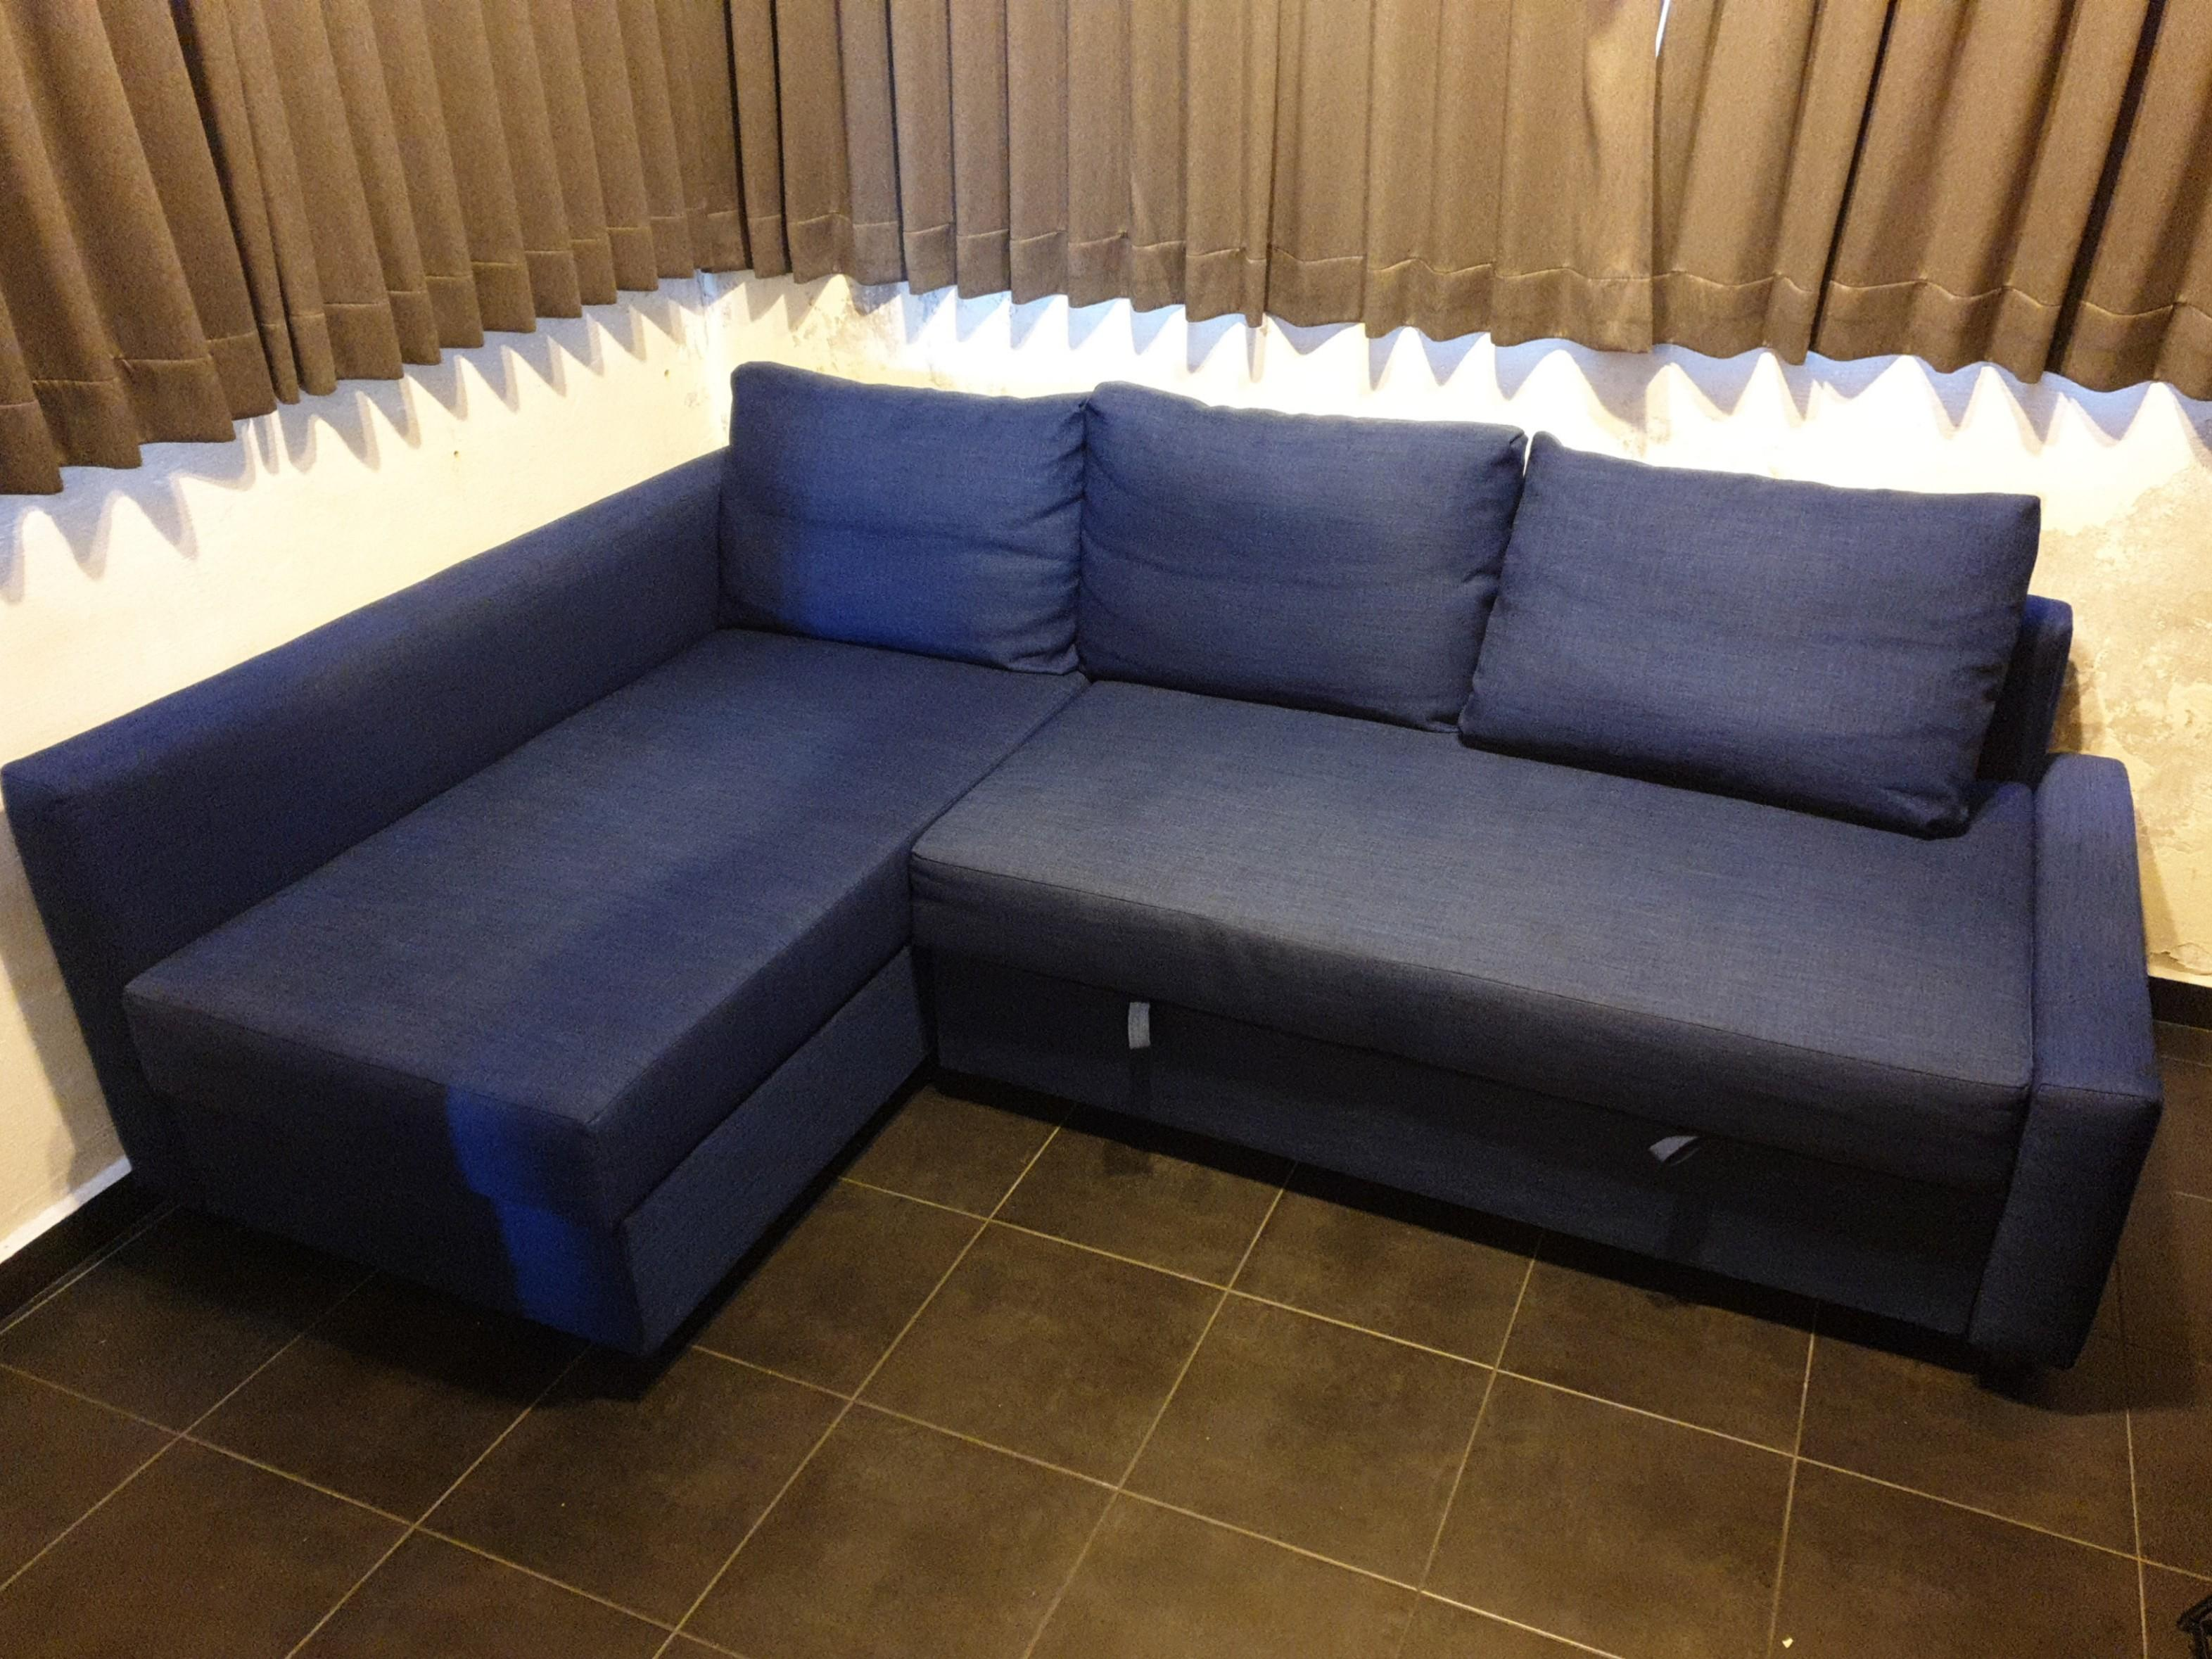 Ikea Sofa Bed With Storage Instructions